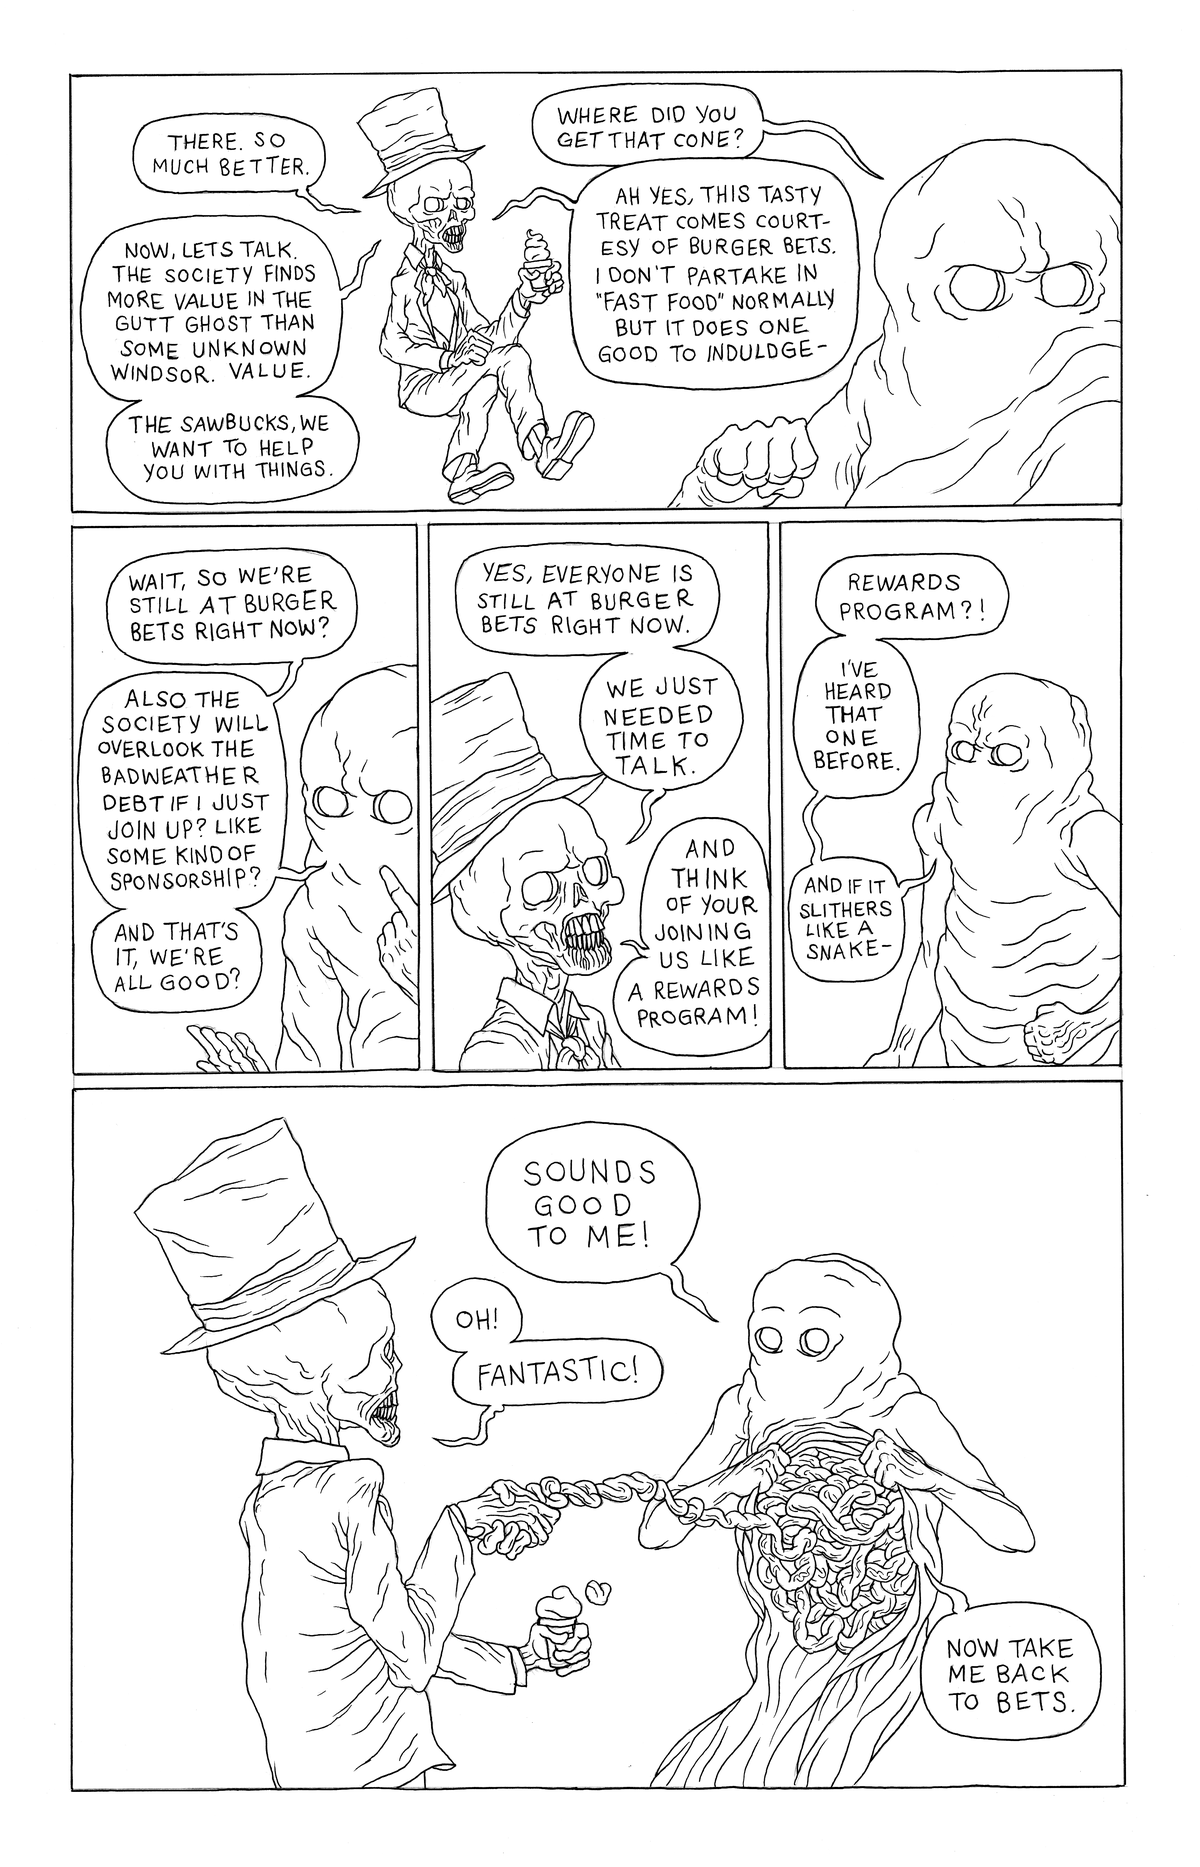 Image of Gutt Ghost Original Page (TWTSSS Pg. 15)